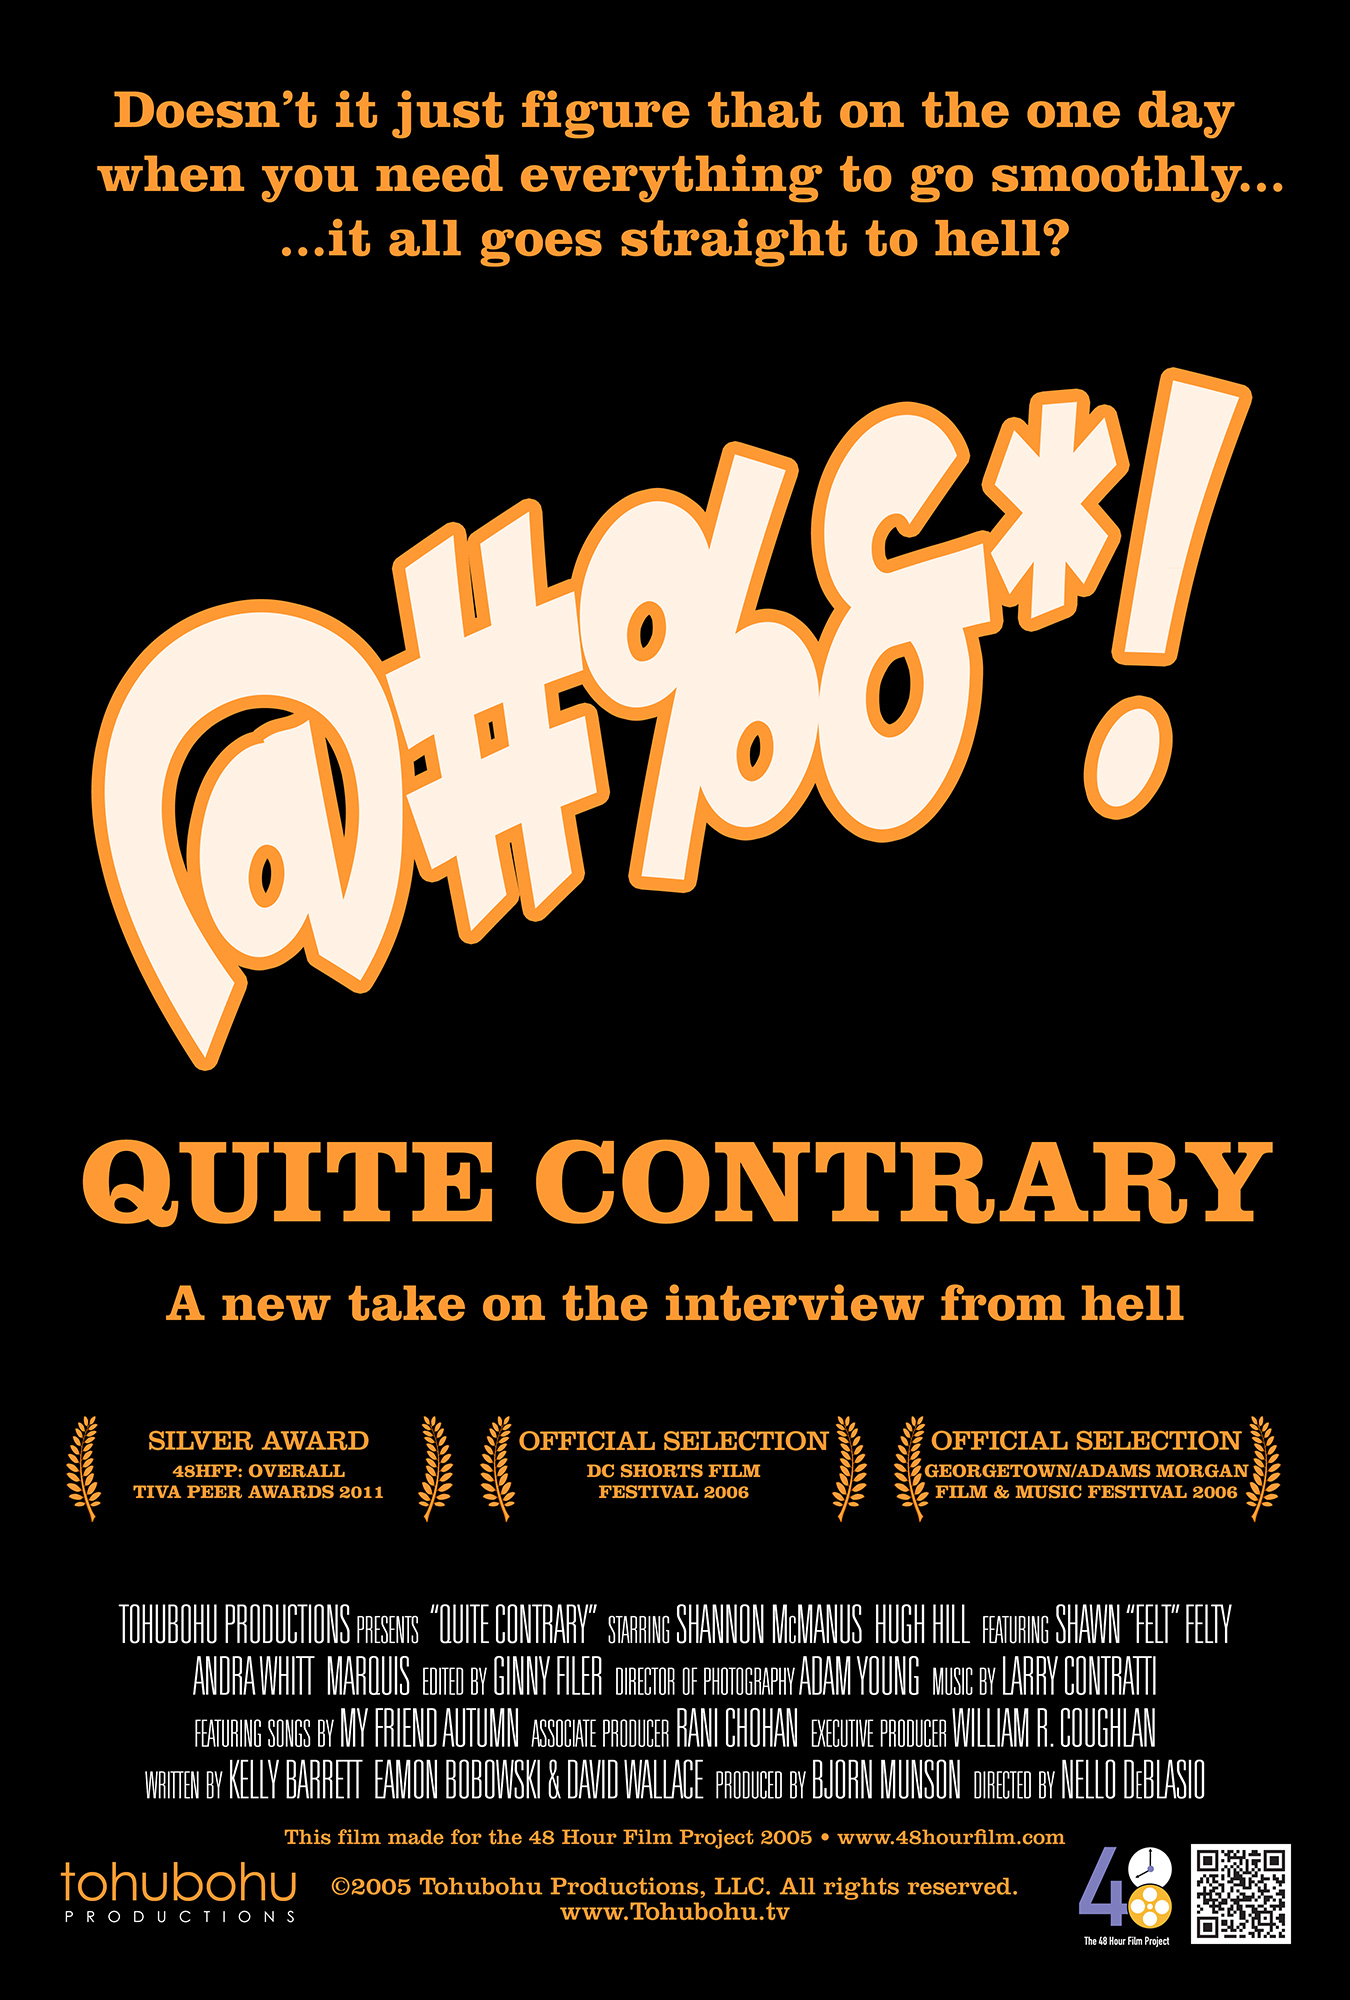 """Quite Contrary - 2005 · 7:49 · written by Kelly Barrett, Eamon Bobowski & David Wallace · produced by Bjorn Munson · directed by Nello DeBlasioMaking a good first impression at a job interview is critical, as Mary well knows. But from the start, fate seems to be working against her. She oversleeps, and has to scramble to get ready. She can't find a taxi, and has to walk from her hotel to the office. She can't get into an overly crowded elevator, and has to take the stairs. But despite the setbacks, she manages to make it to the office on time, only to discover that — before she can utter a single syllable — the atmosphere is quite contrary to what one would normally expect. And that atmosphere becomes more bizarre with each passing moment.""""Quite Contrary"""" — a comedy — was Tohubohu's second entry in the 2005 48 Hour Film Project, and marked the directorial debut (on film, anyway) of Tohubohu acting veteran Nello DeBlasio. It, too, was written, shot, and edited over the weekend of April 29–May 1, 2005, and was first screened at the AFI Silver Theatre on Wednesday, May 4."""